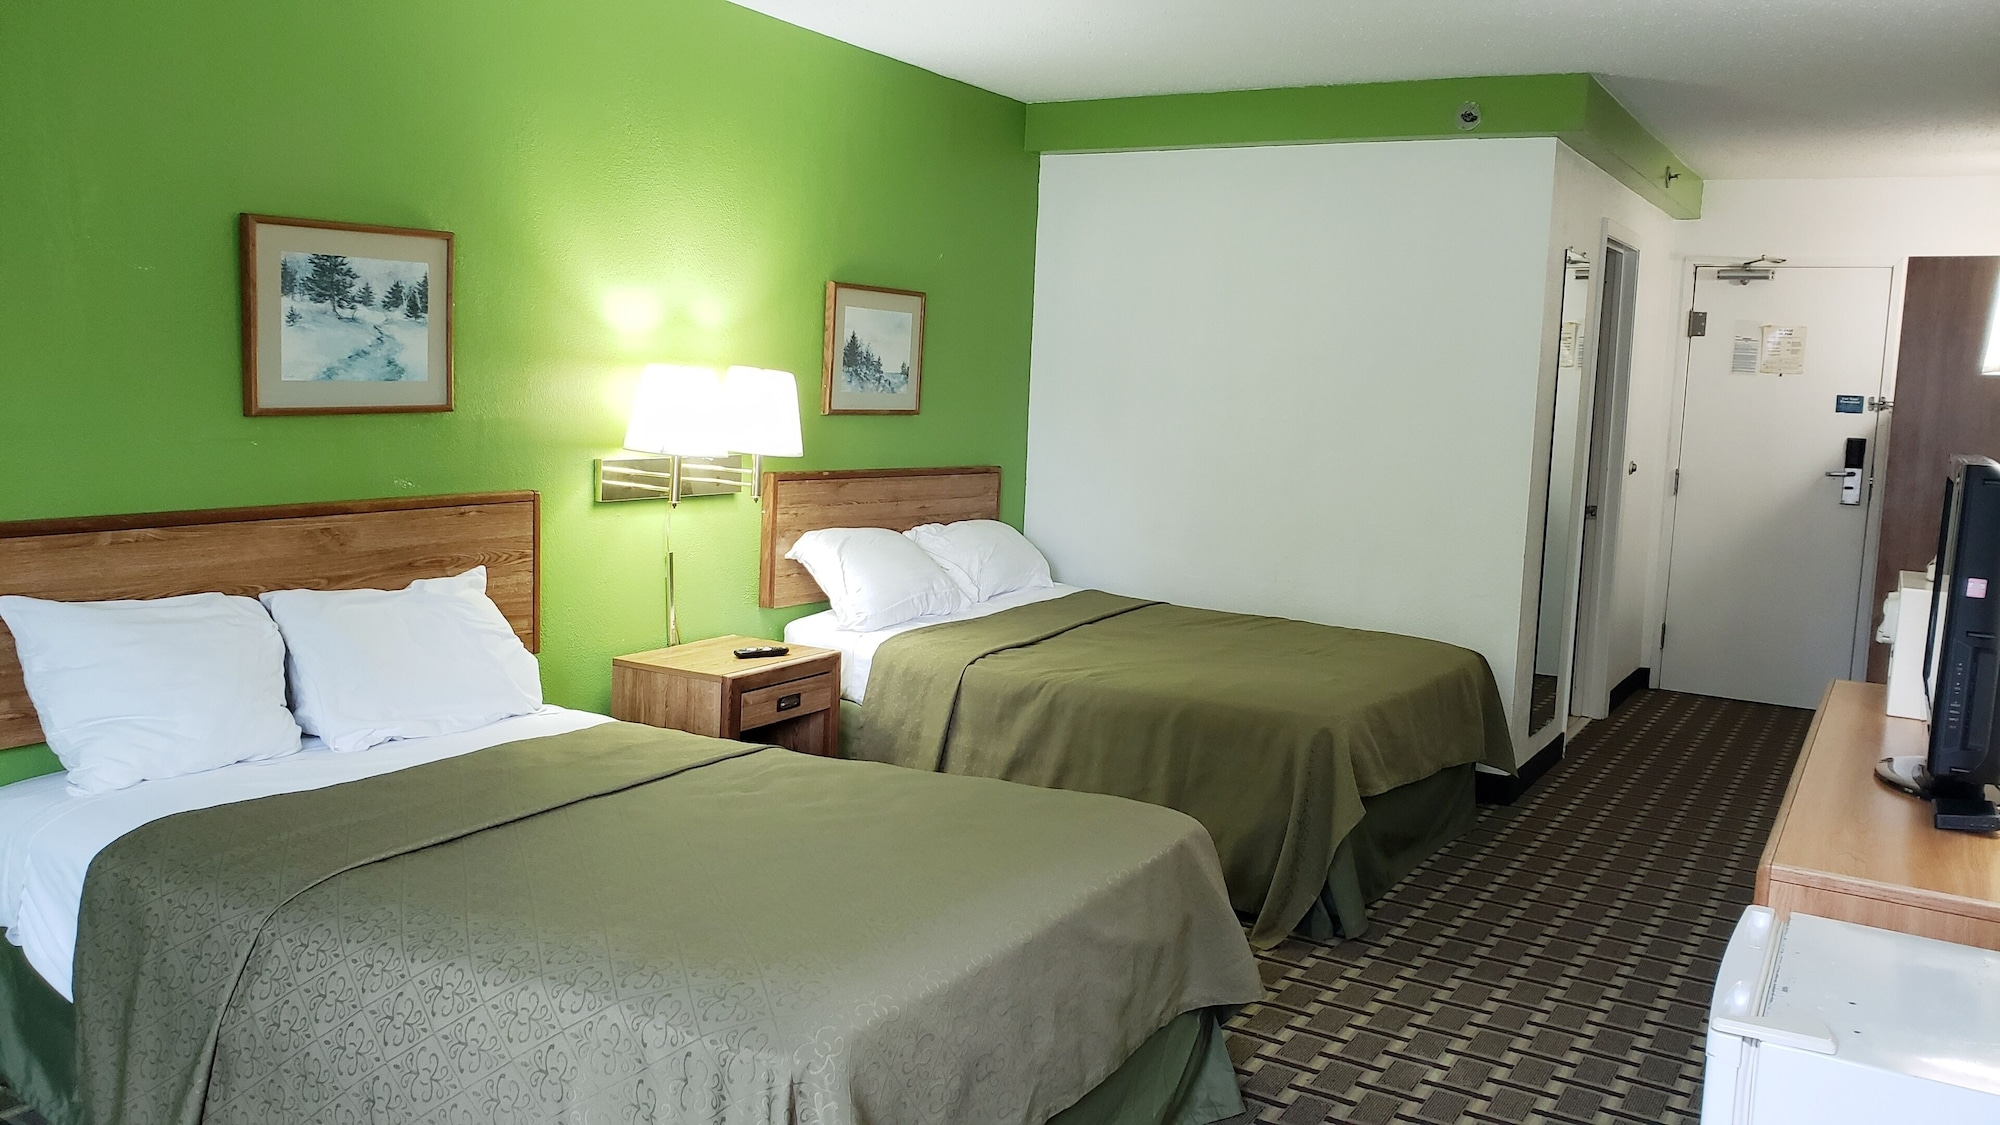 Airport Plaza By Carla Hotels Roanoke, Roanoke City